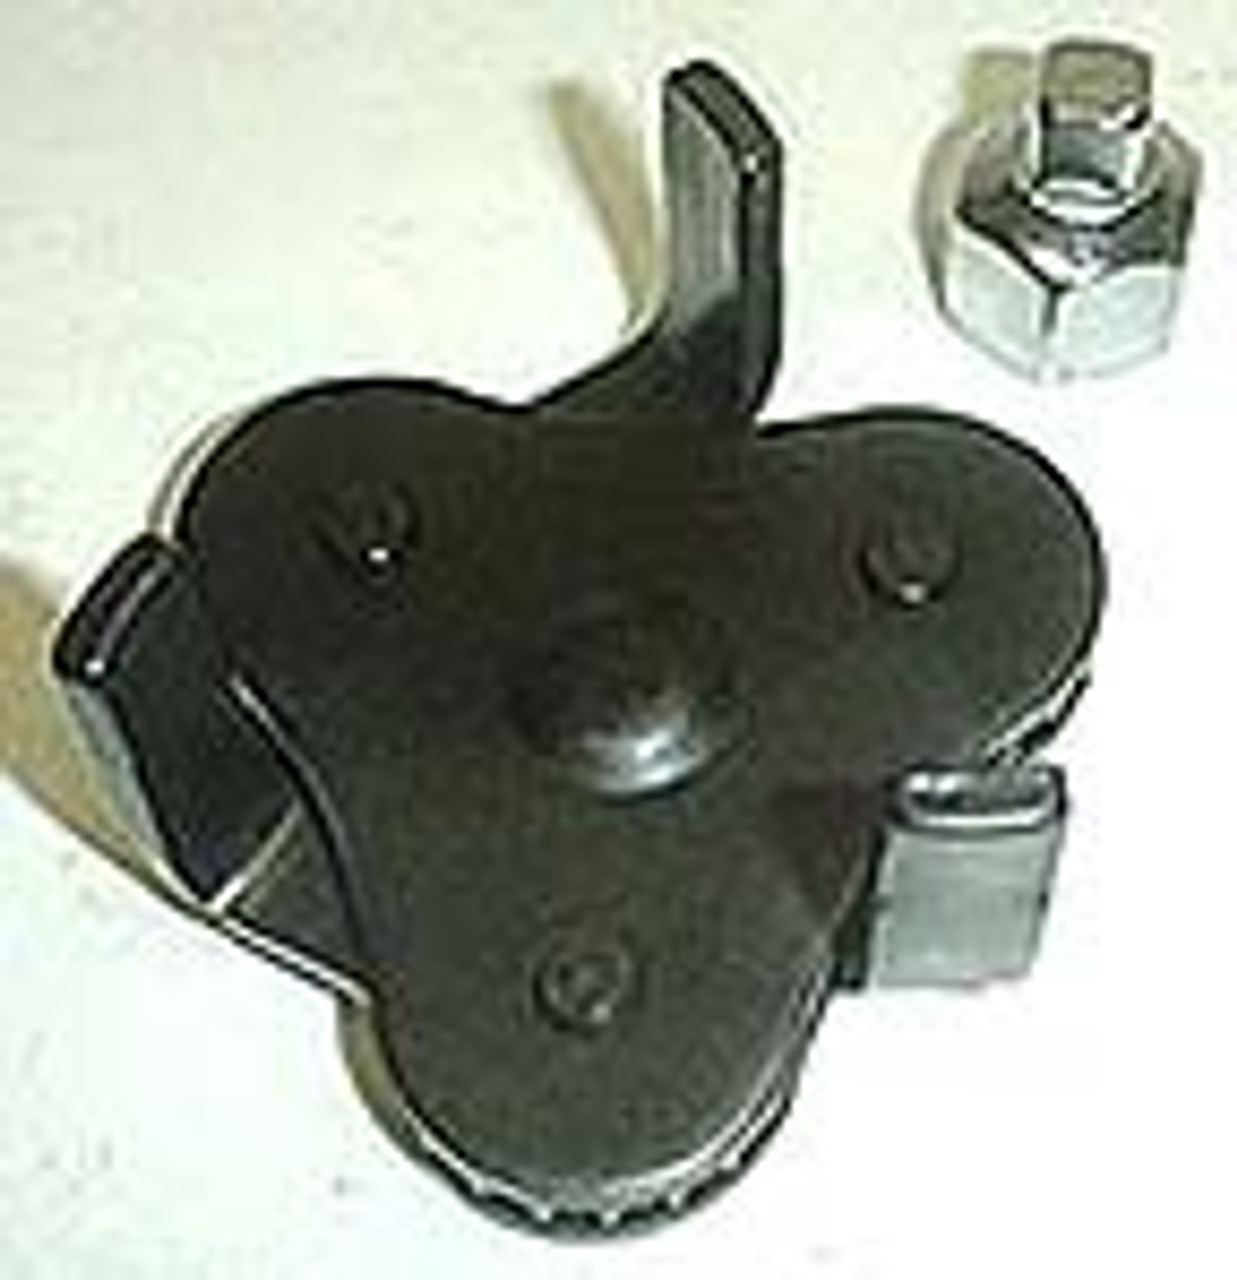 2 Way Oil Filter Wrench